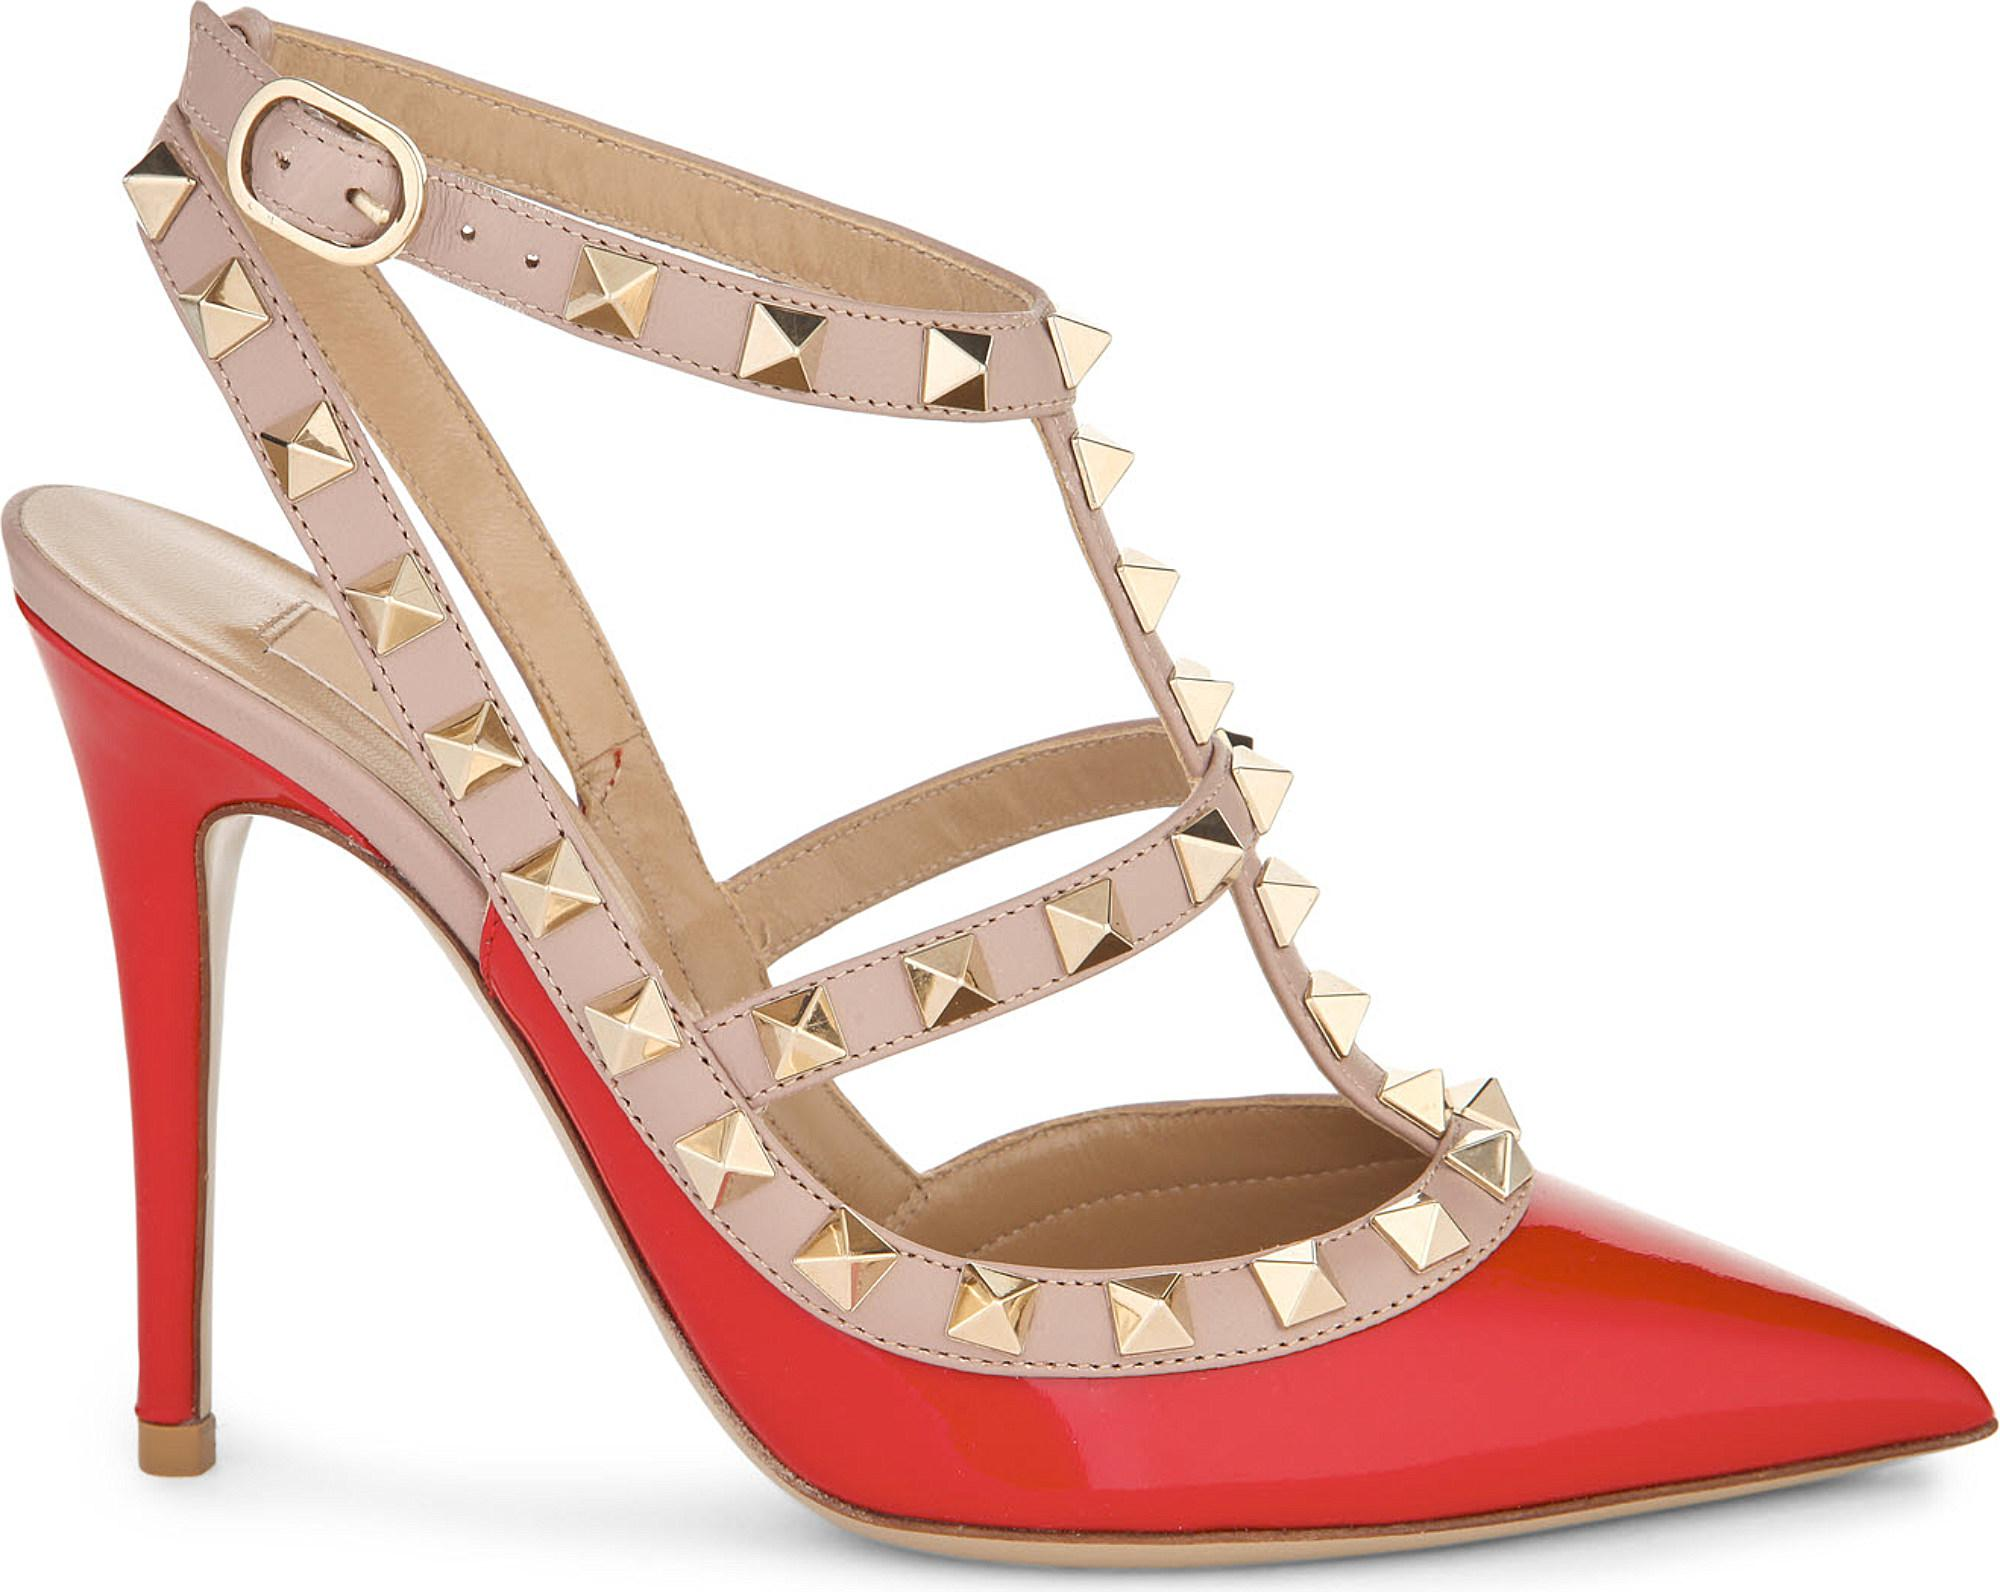 ac474f5f20e Lyst - Valentino Rockstud Leather Pumps in Natural - Save 50%